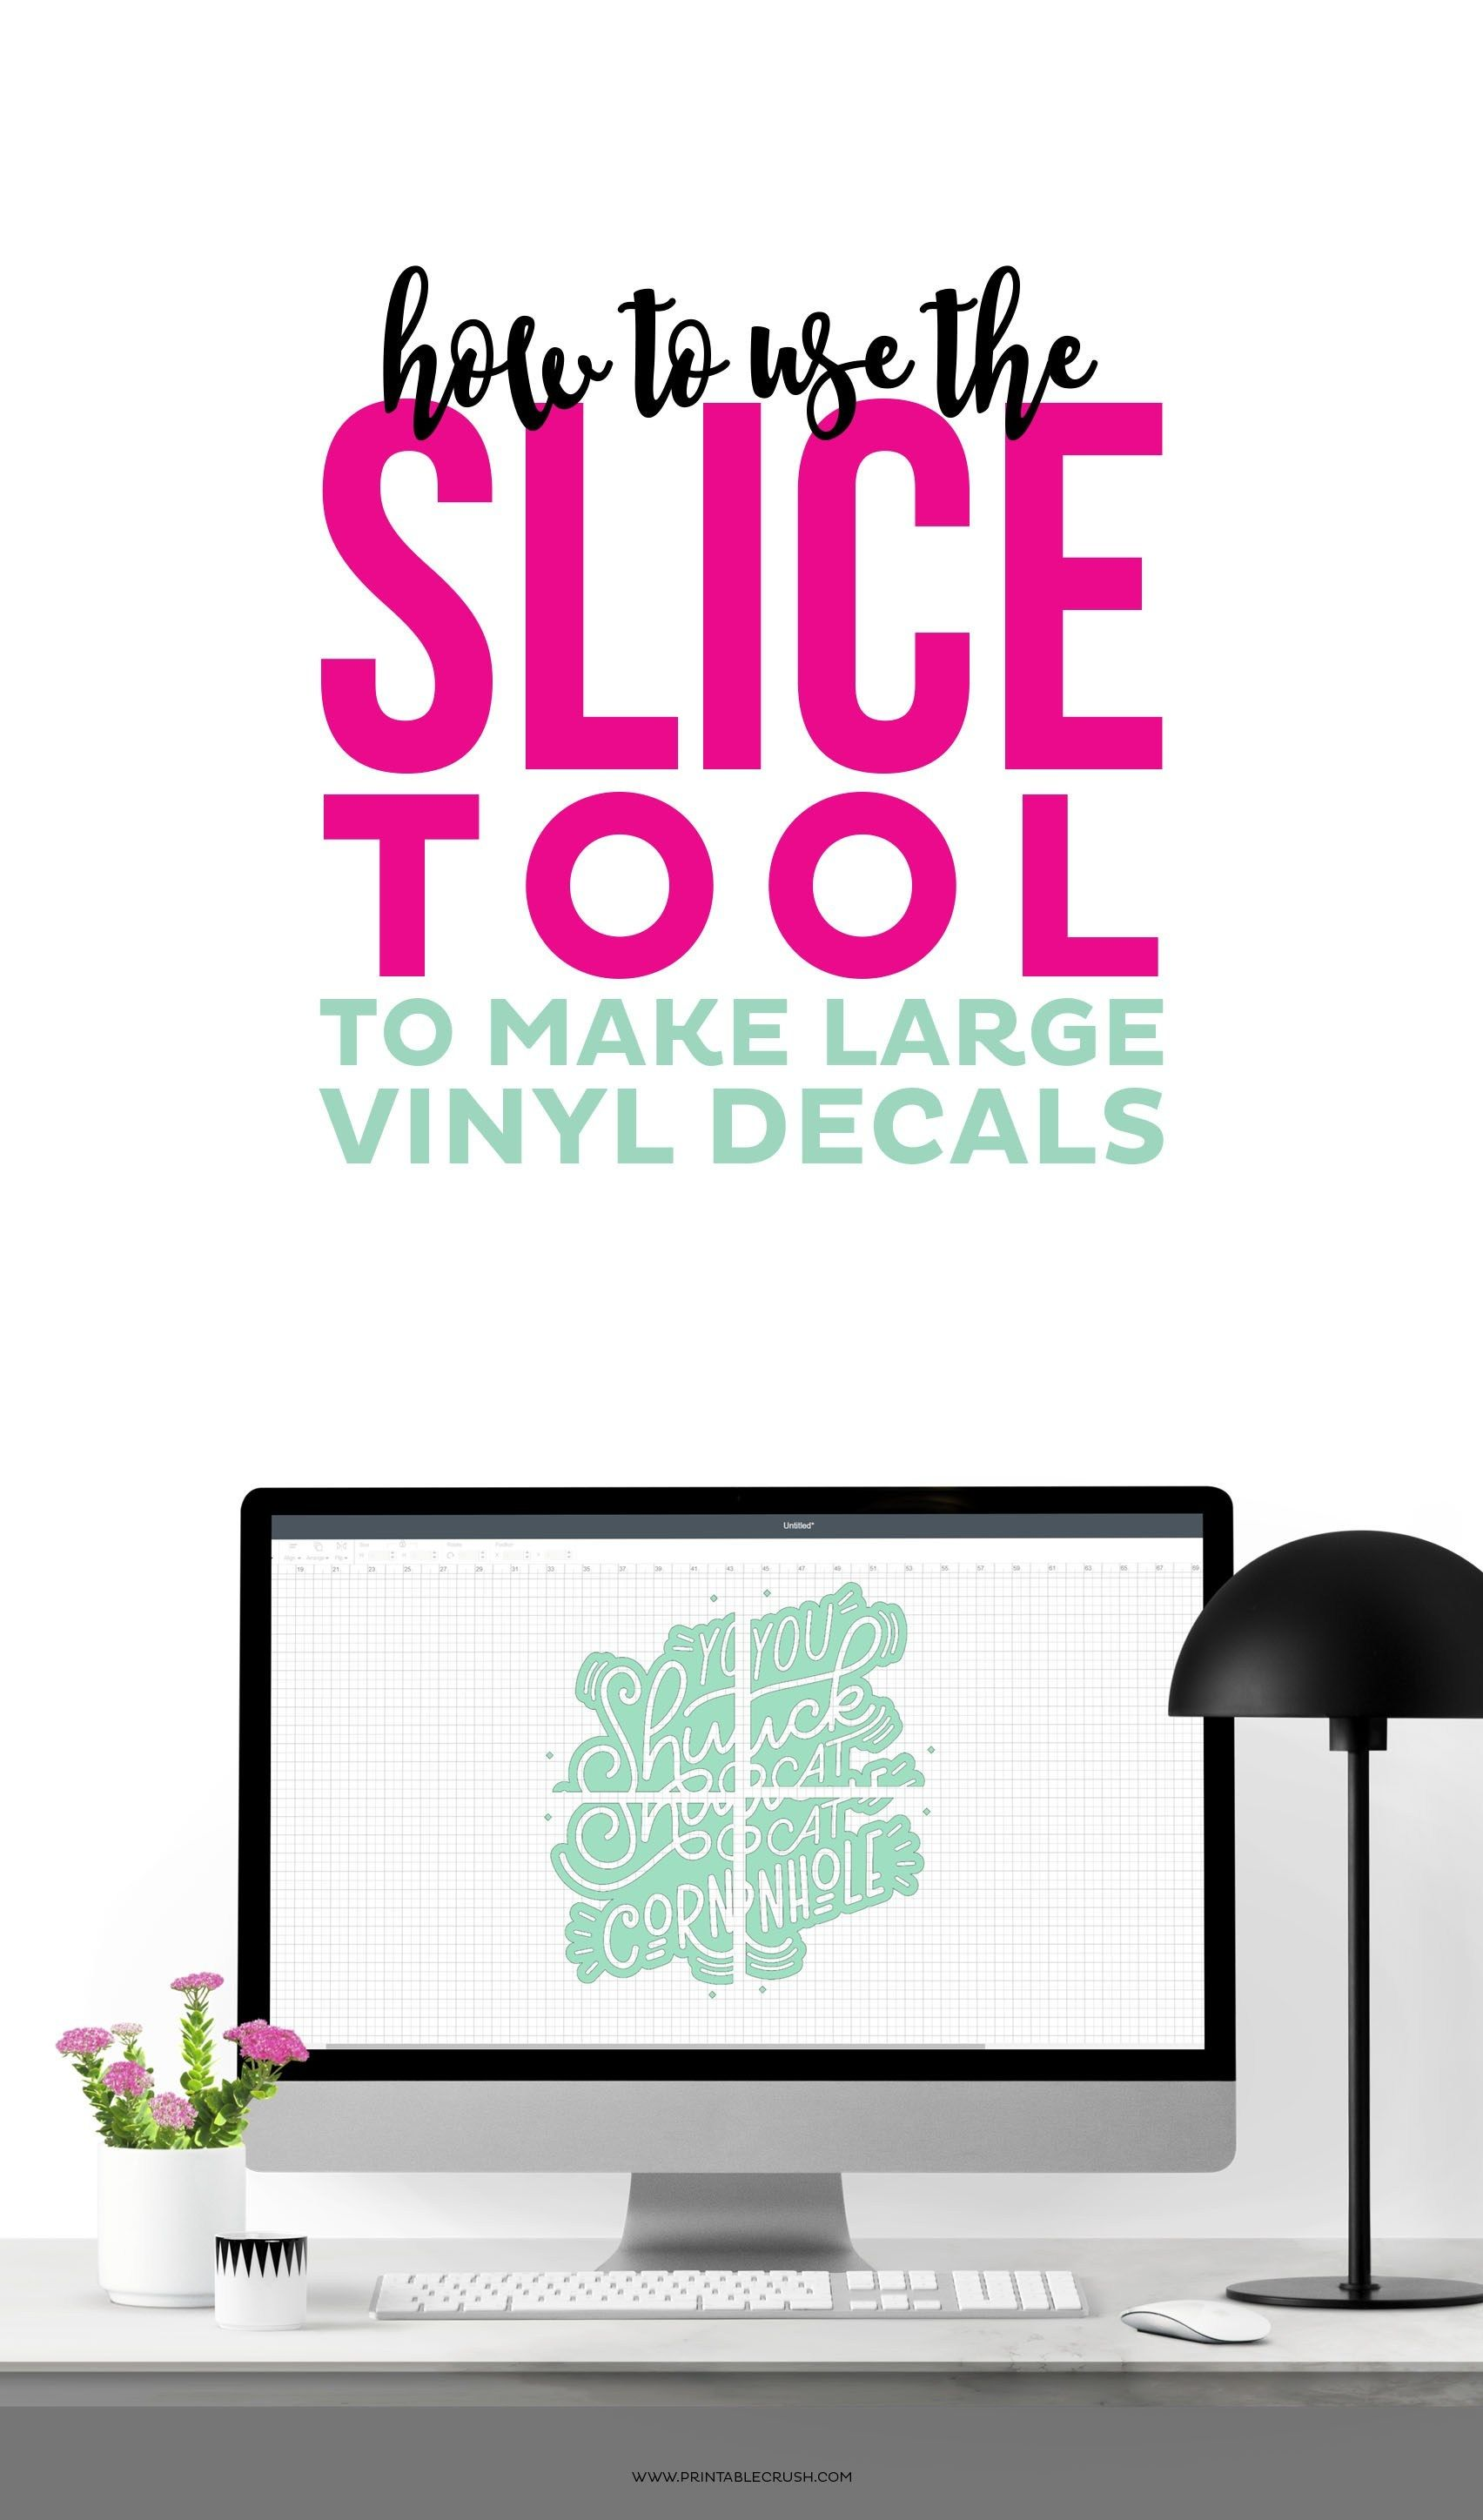 Vinyl Decals - Create Large Decals In Cricut Design Space #cricutvinylprojects